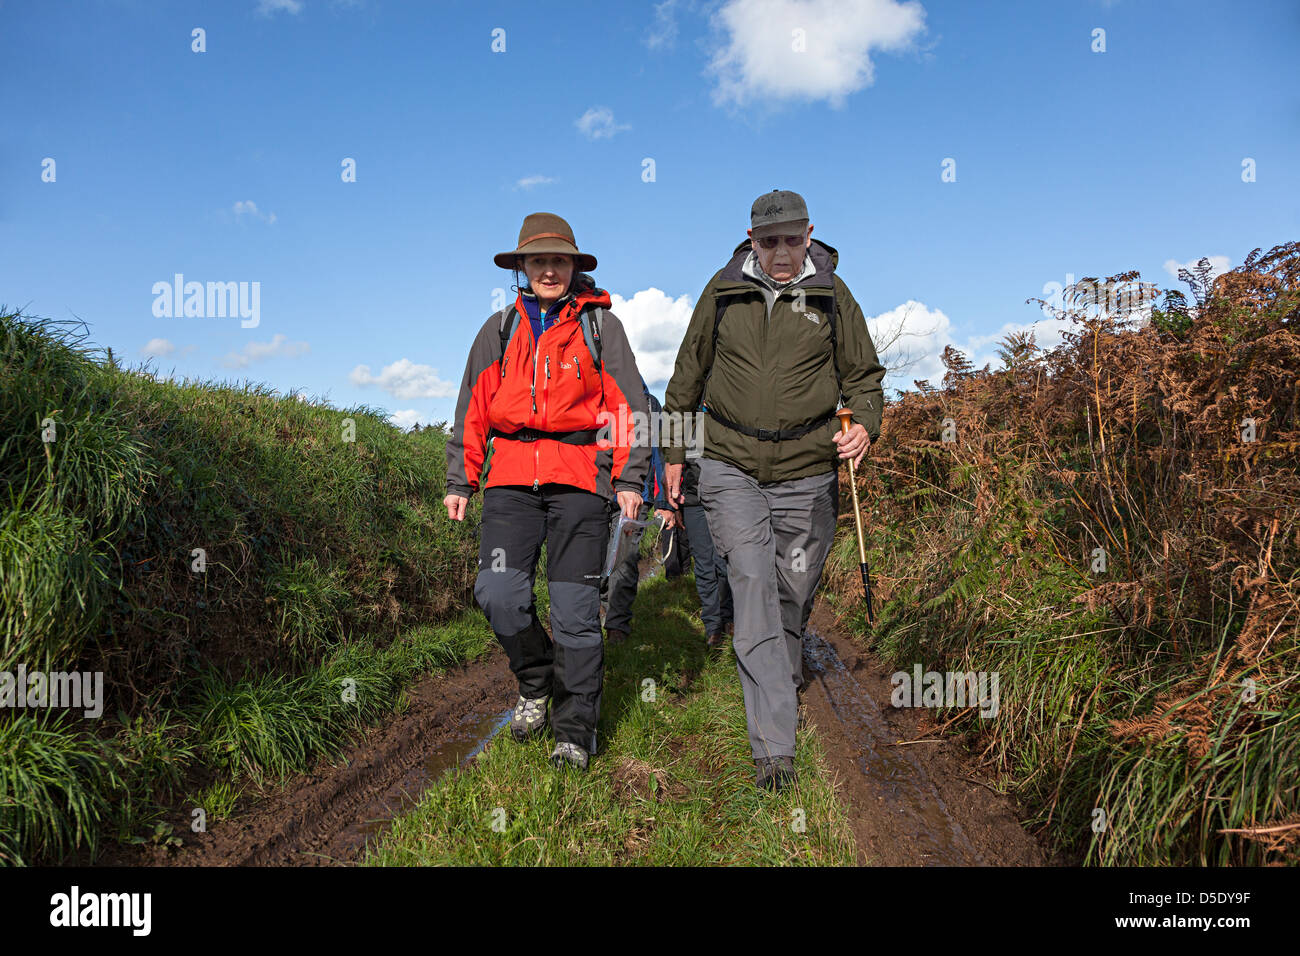 Led group on nature and natural history ramble walking on track across island of Jersey, Channel Islands, UK - Stock Image